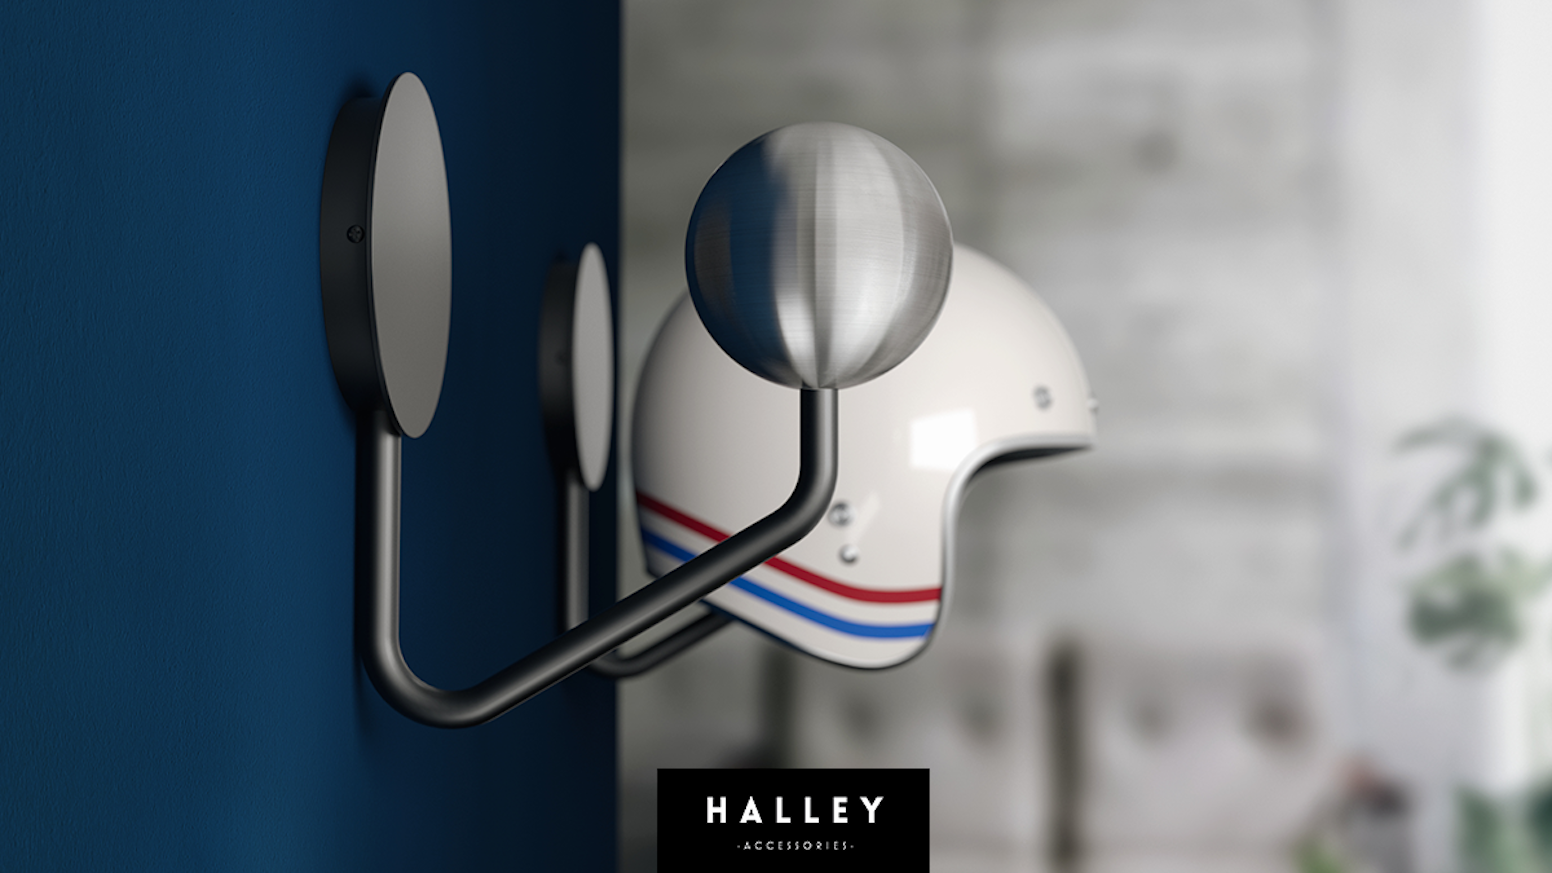 Give your helmet its own place in your home with the Halley Helmet Rack, a minimal approach to helmet storage.